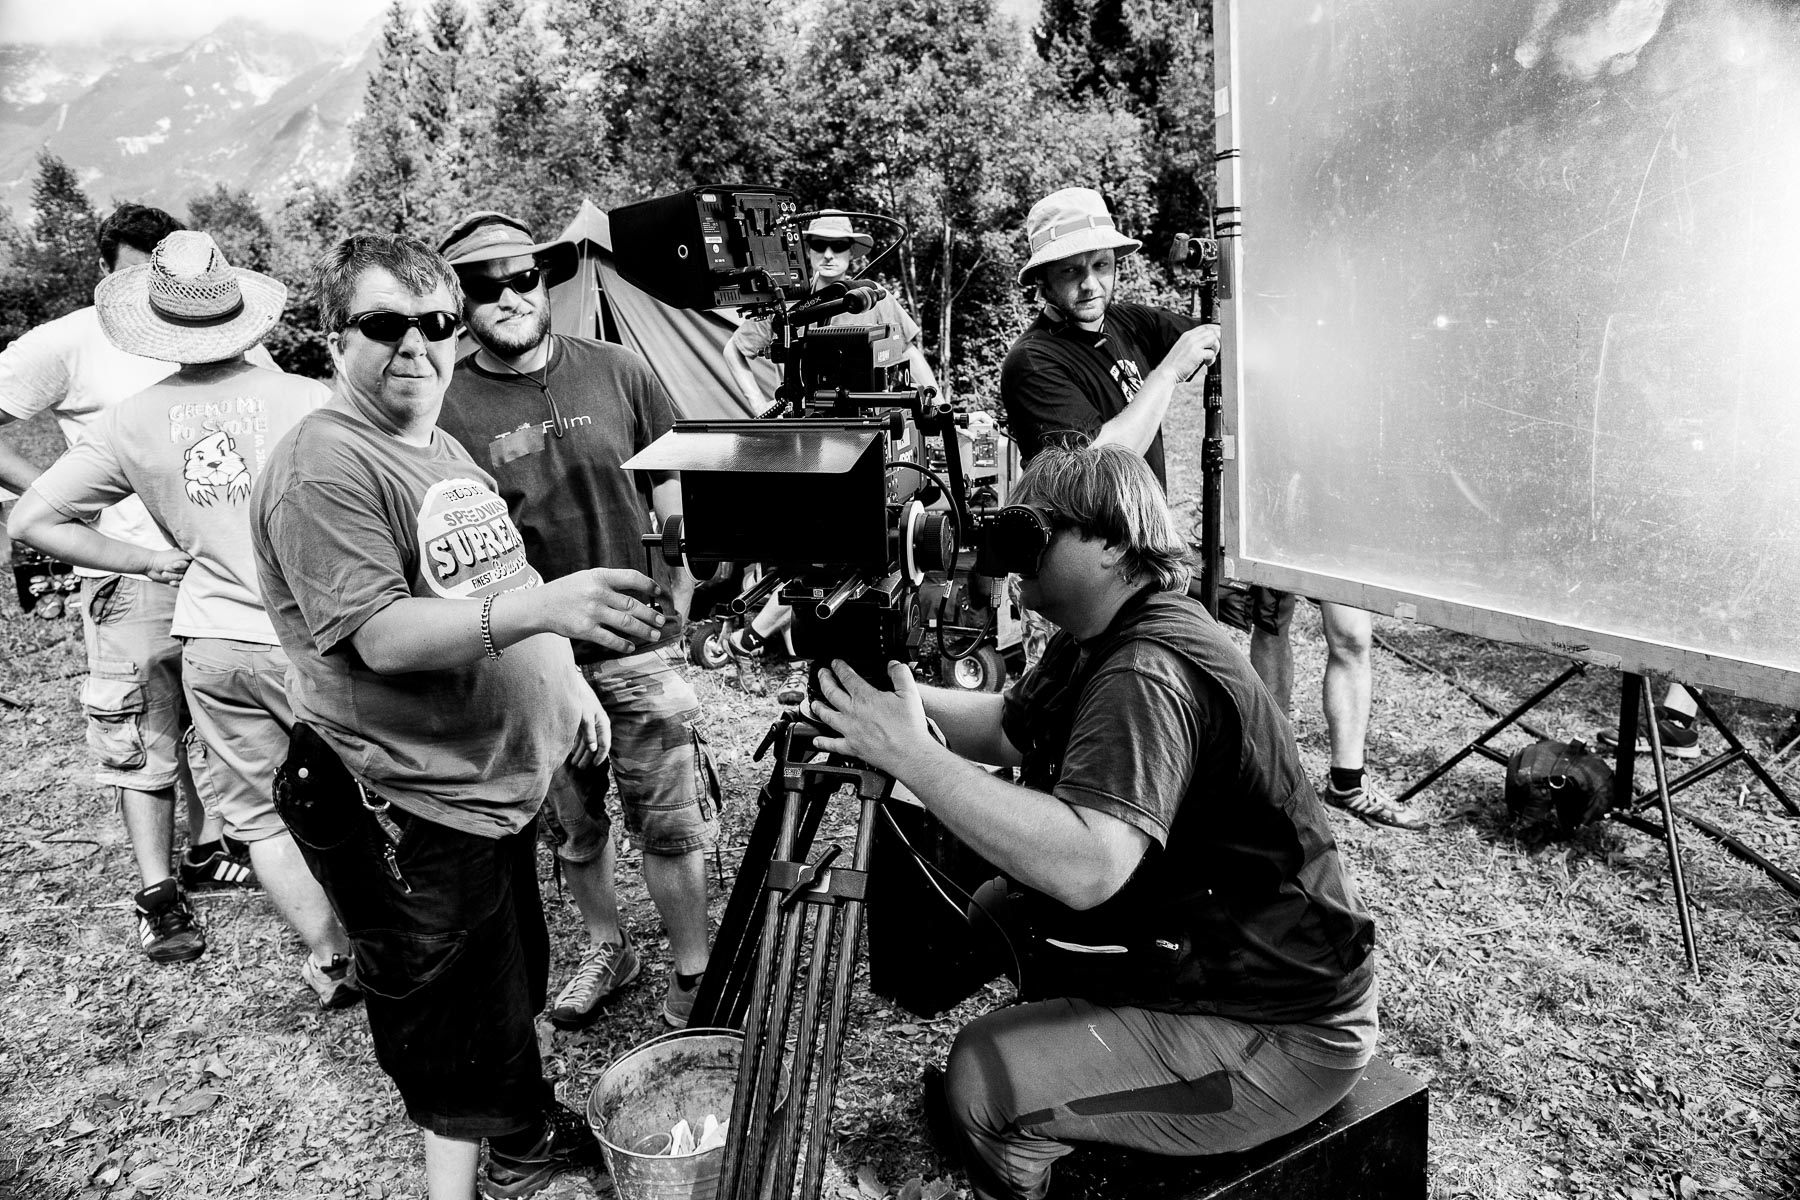 Behind the scenes of the Slovenian film Going Our Way 2 by Luka Dakskobler